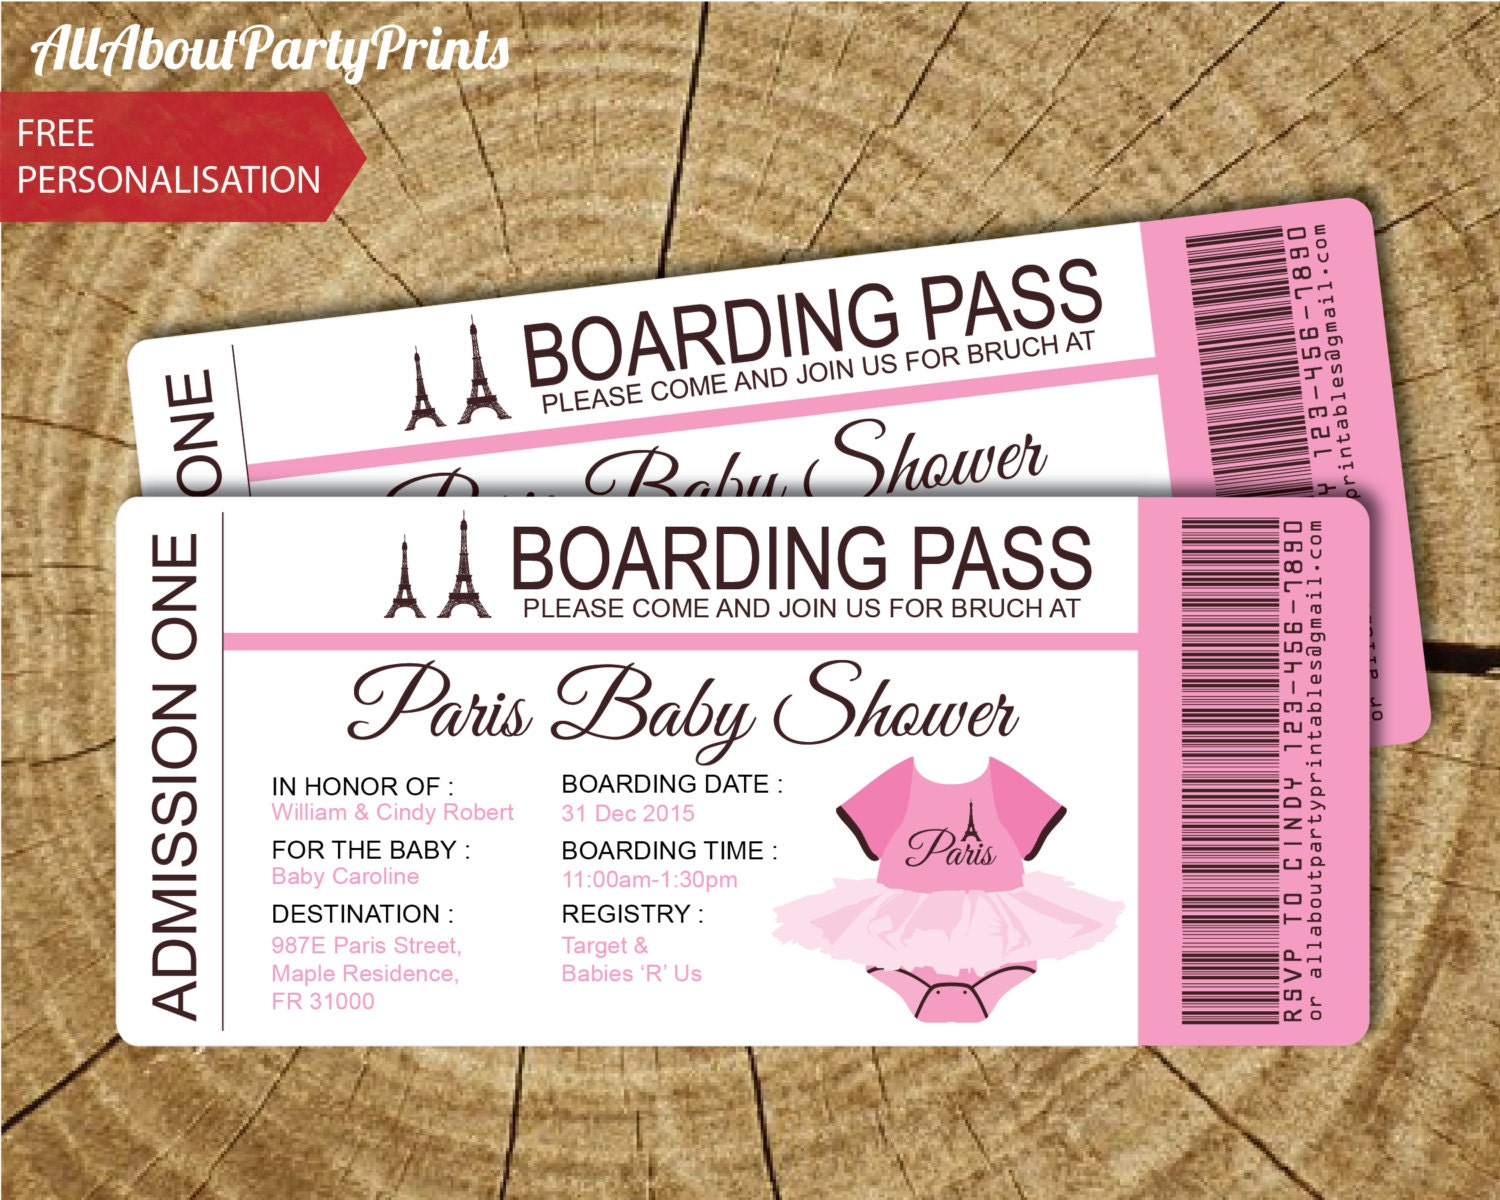 Paris Baby Shower Invitations – gangcraft.net